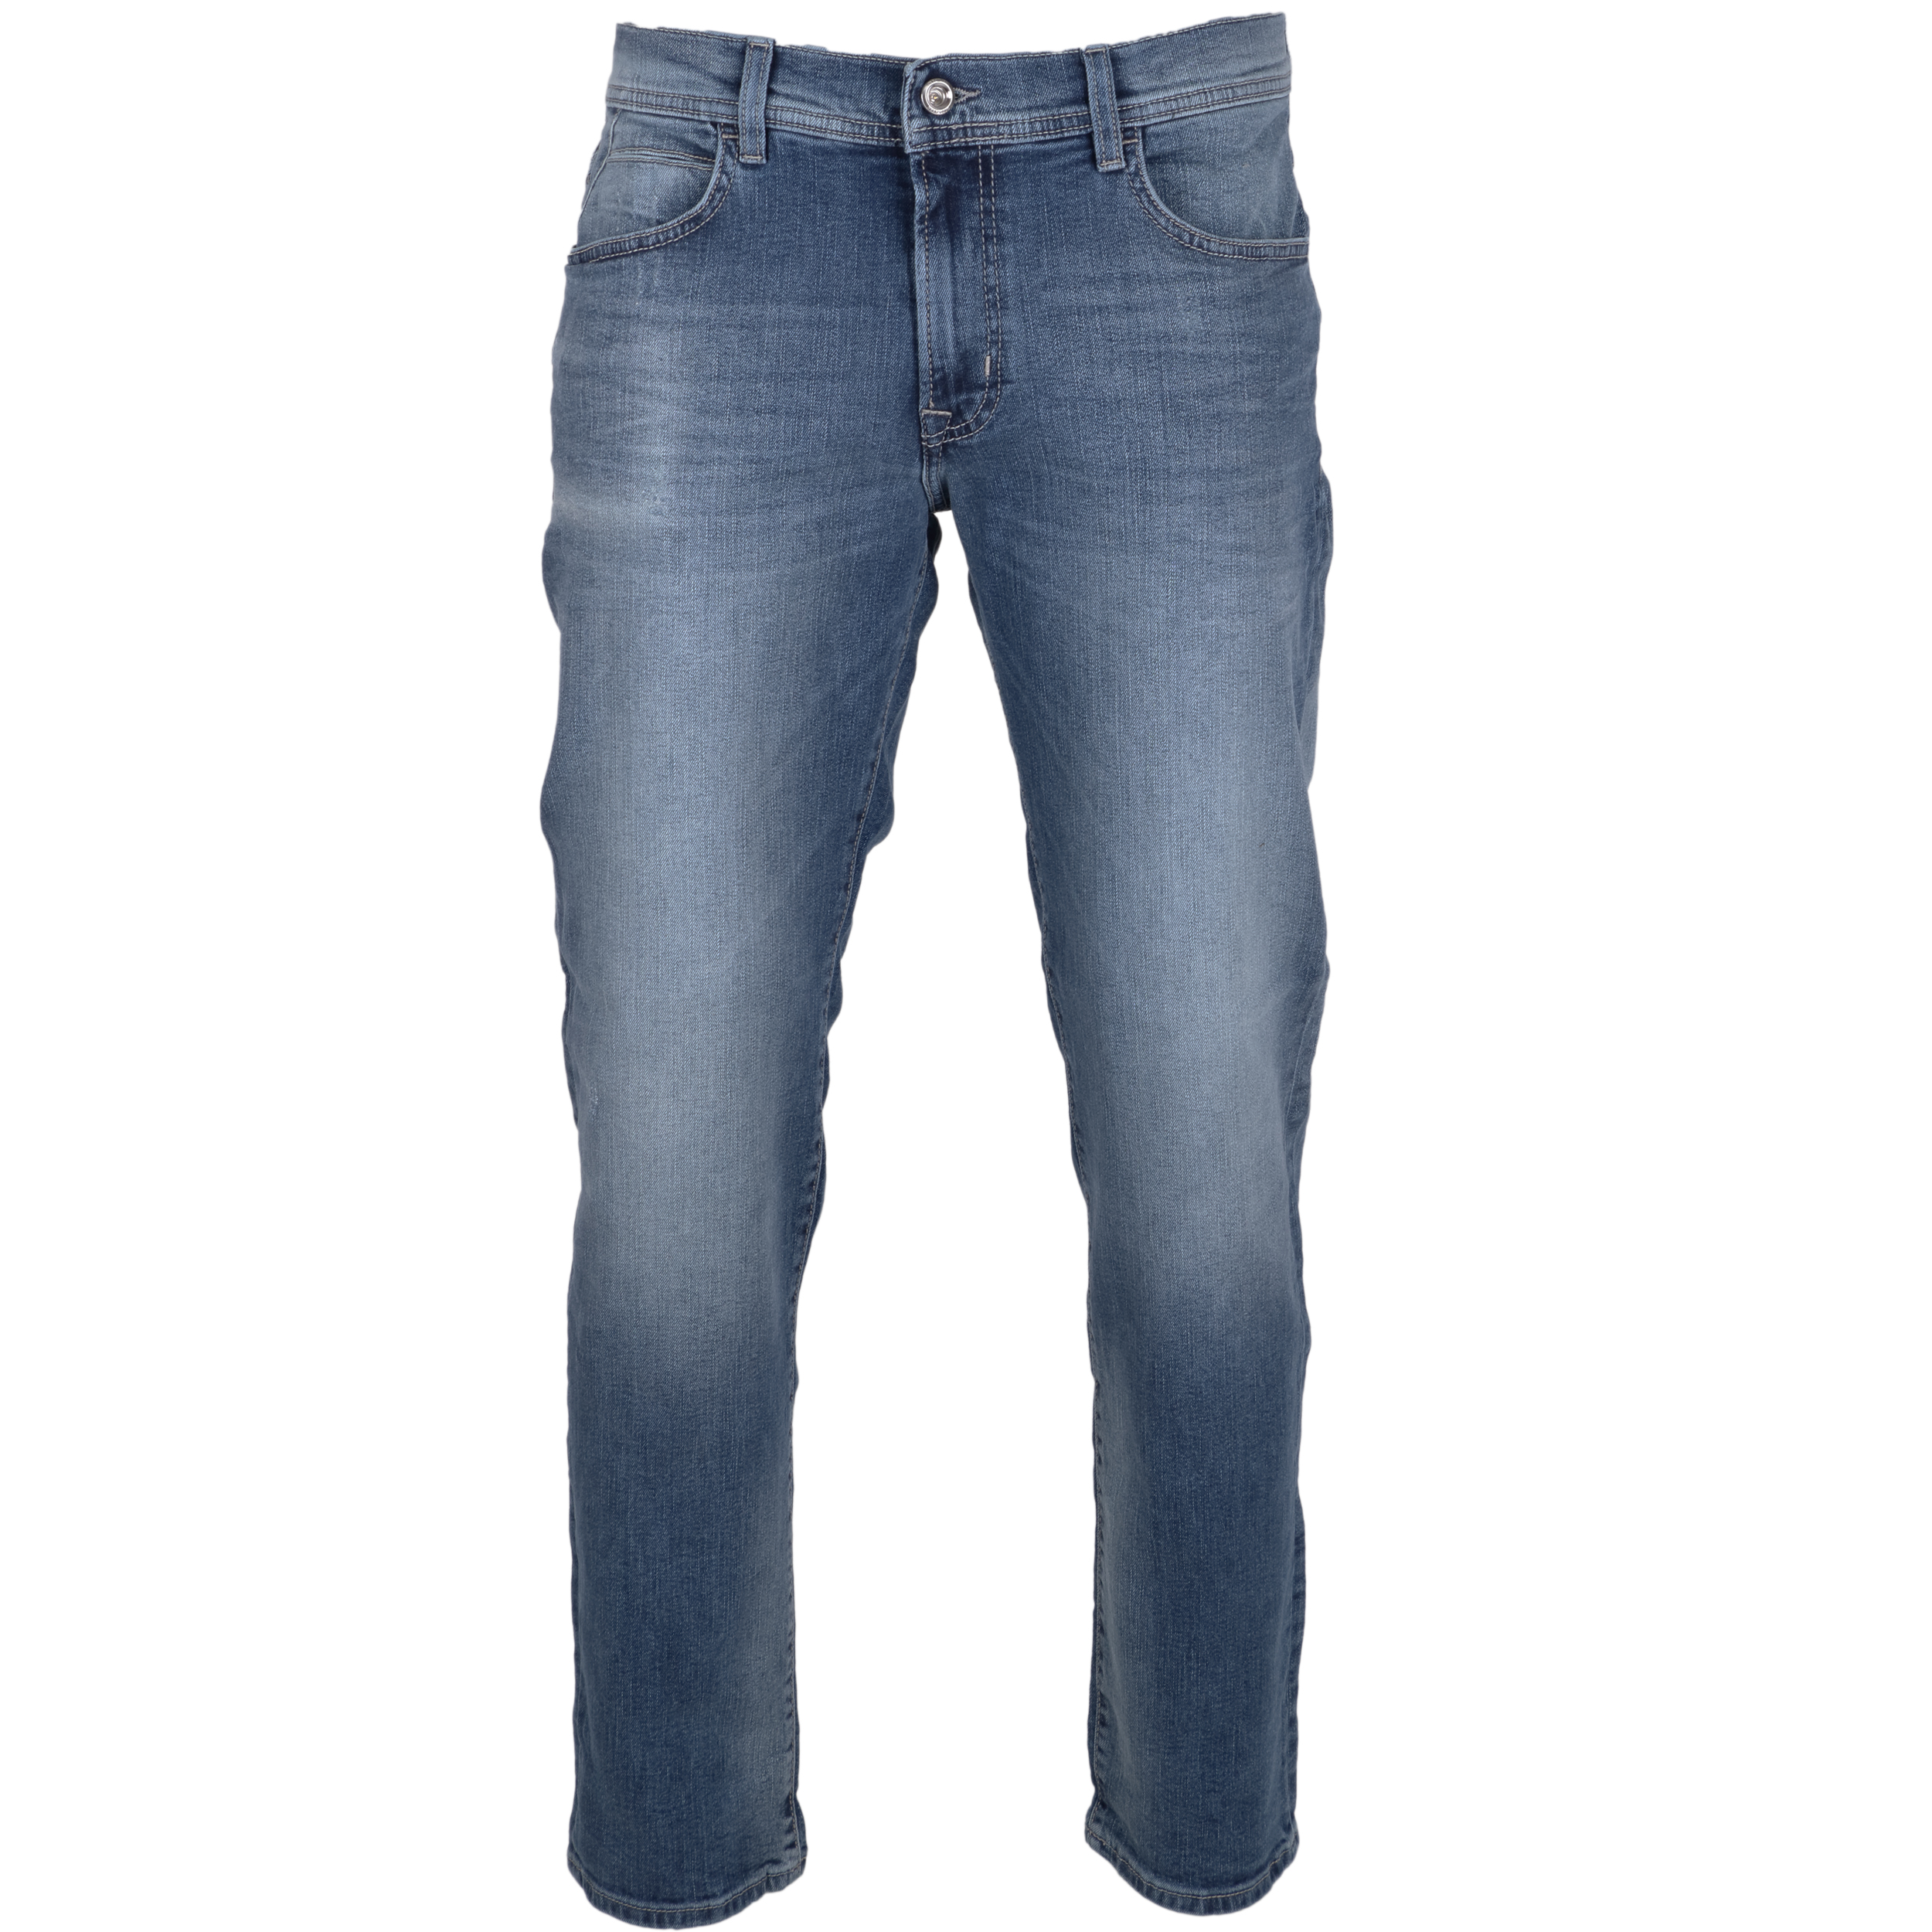 Otto Kern Herren Jeans Ray - used blue 36/32